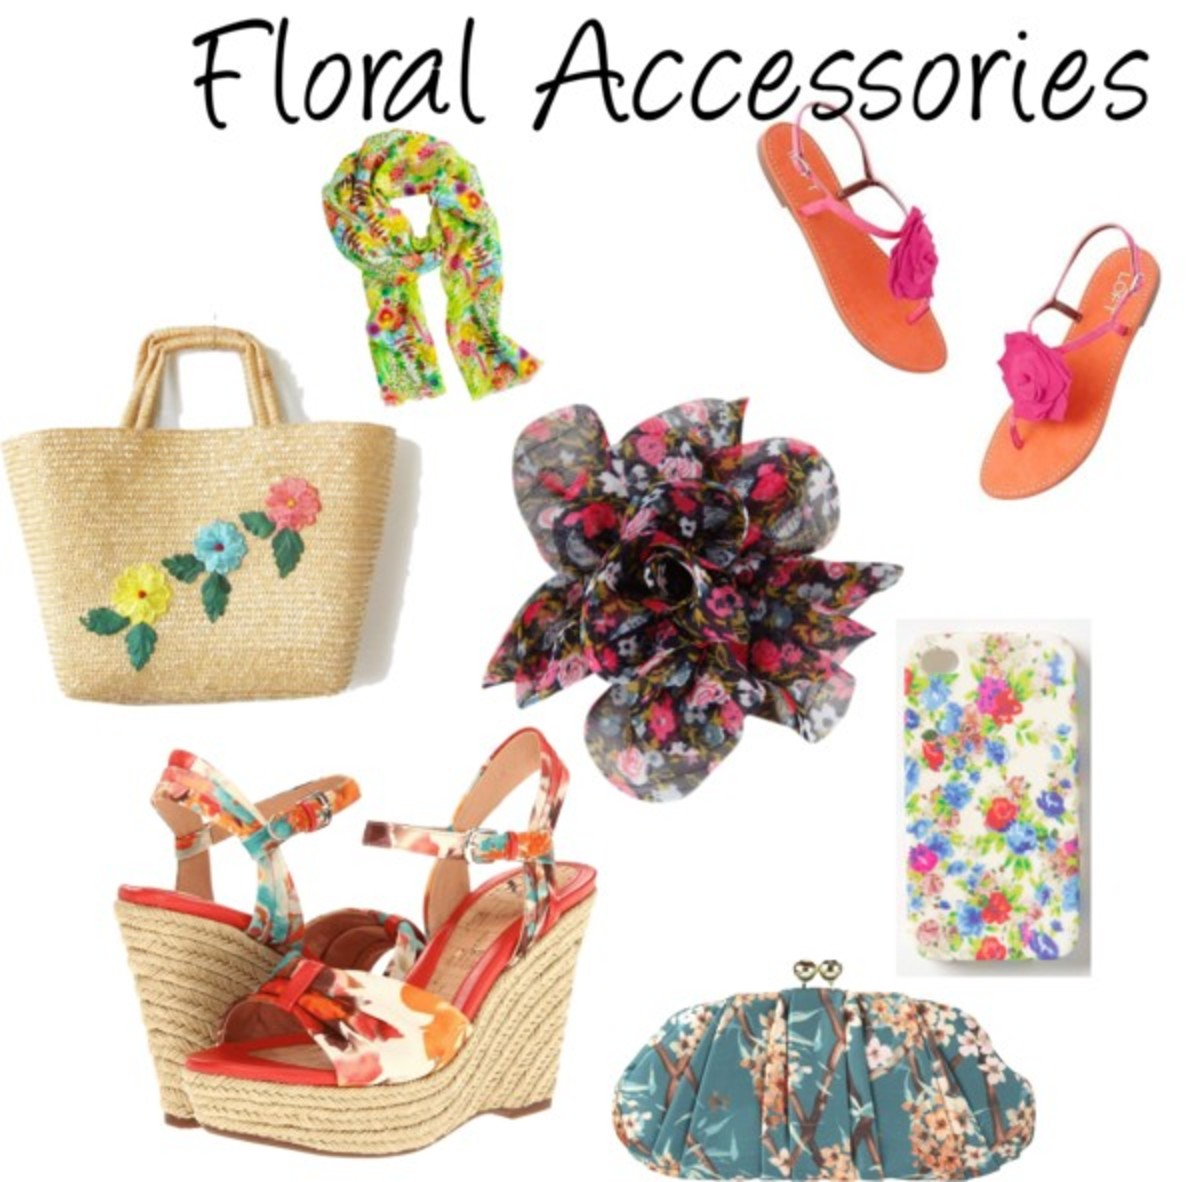 floral accessories